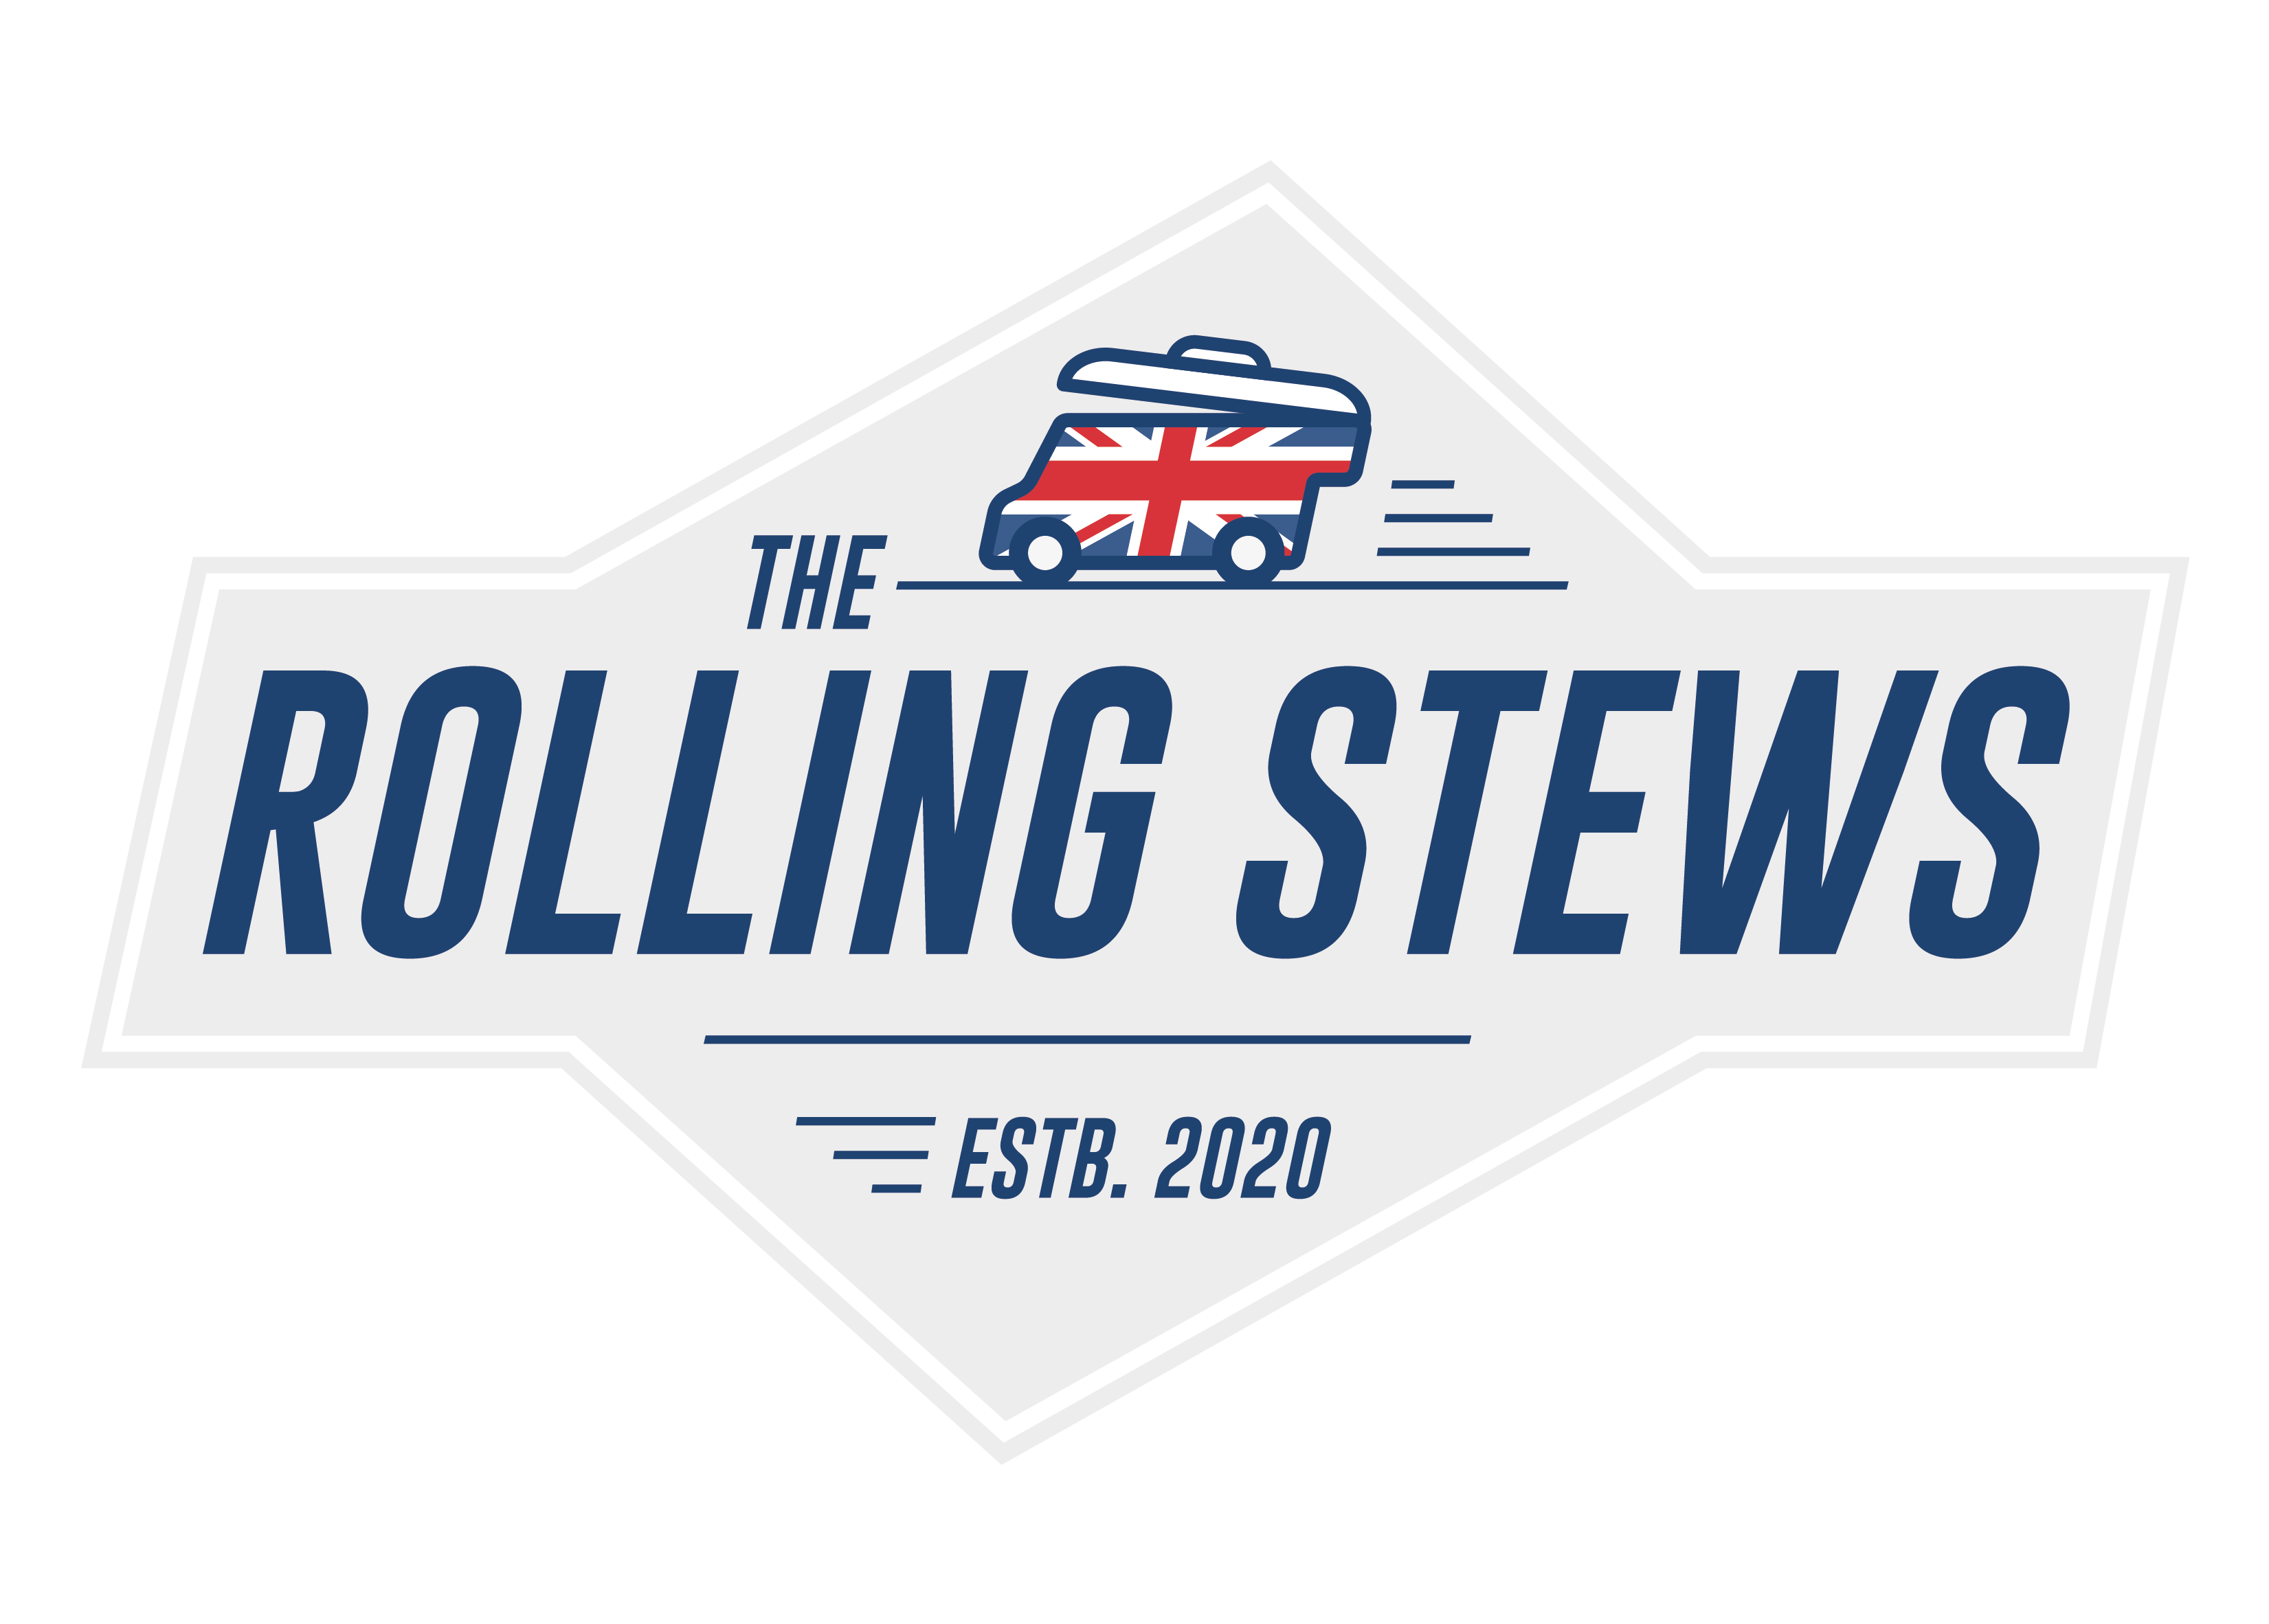 The Rolling Stews